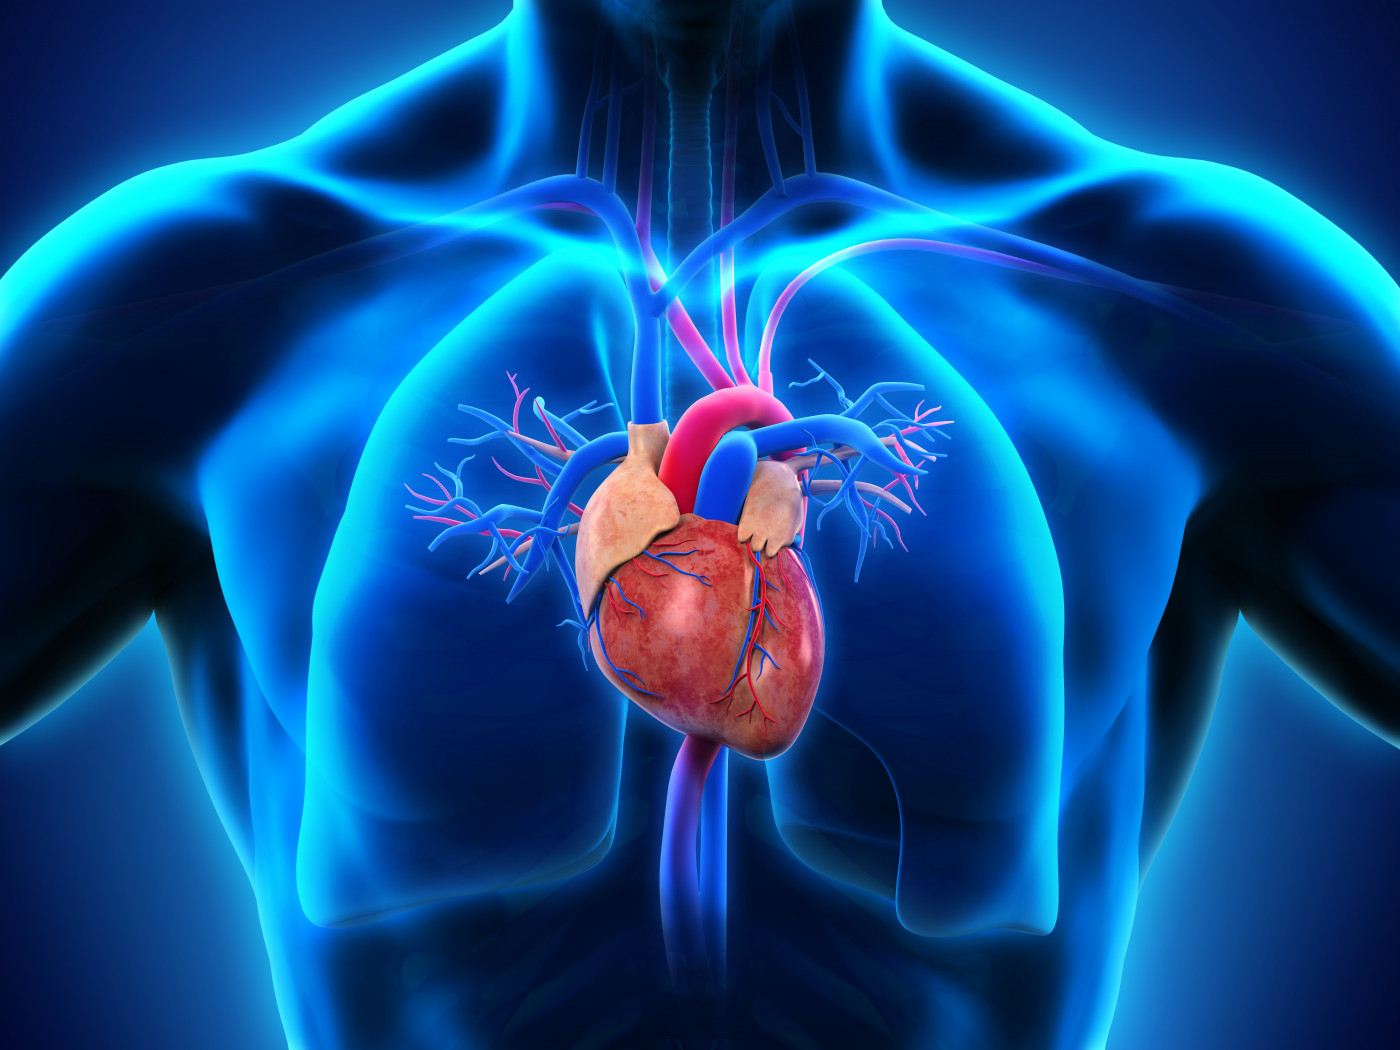 Exercise-induced Arterial Pressure Increase